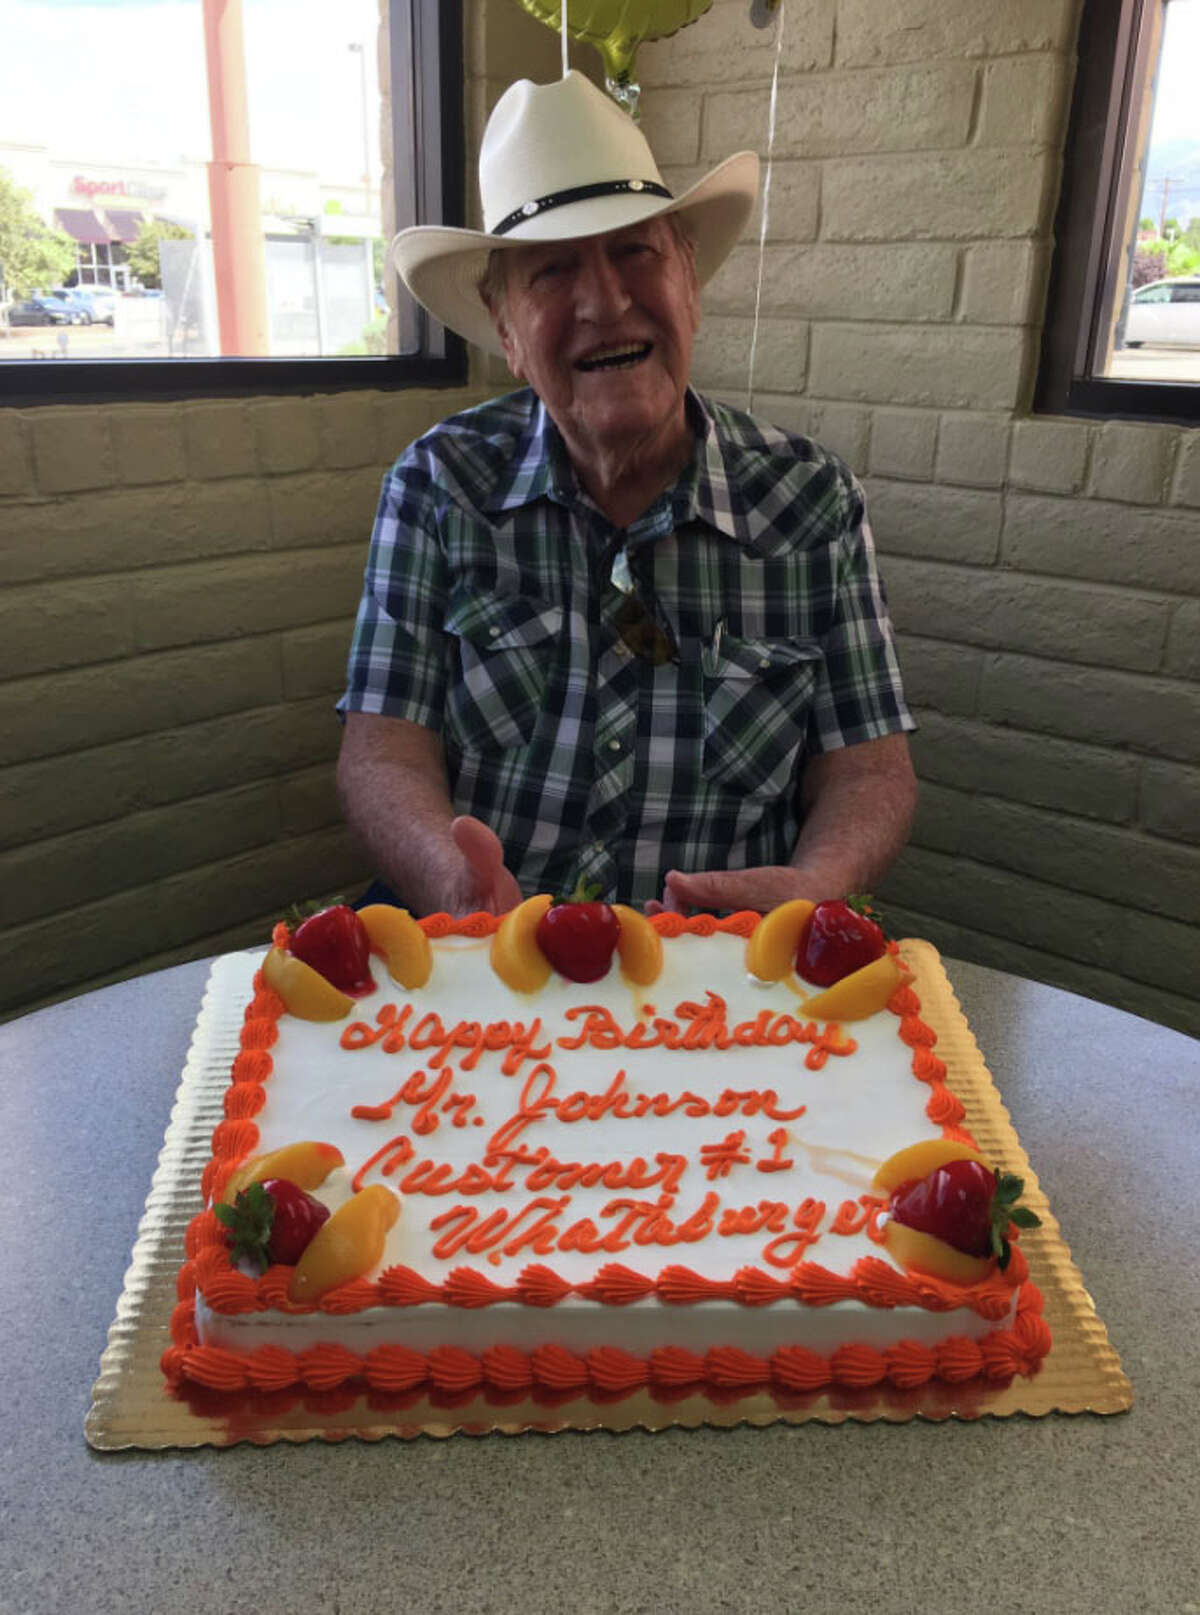 East Texas Whataburger celebrates their number one customer who has found solace in the restaurant's company since his wife died.